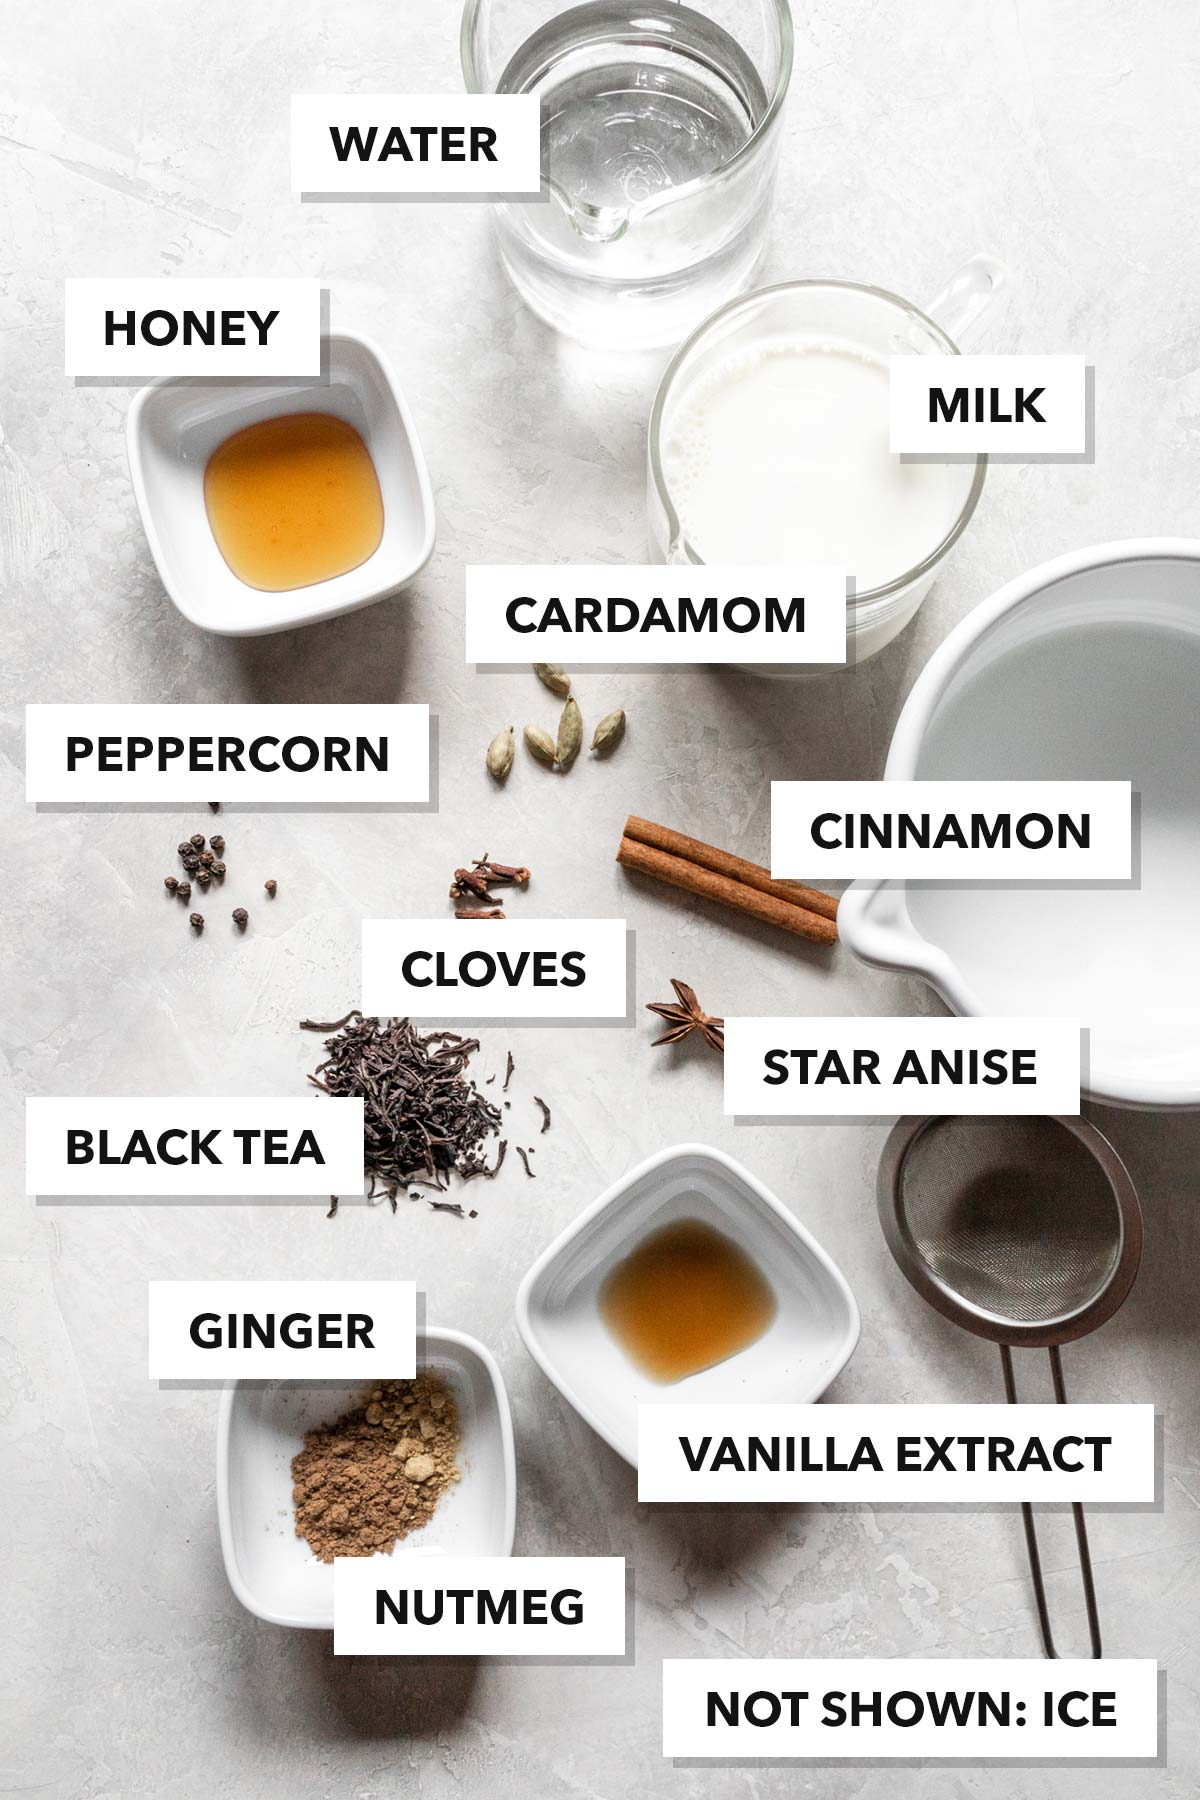 Ingredients to make a chai latte on a surface and each item labeled with the name.